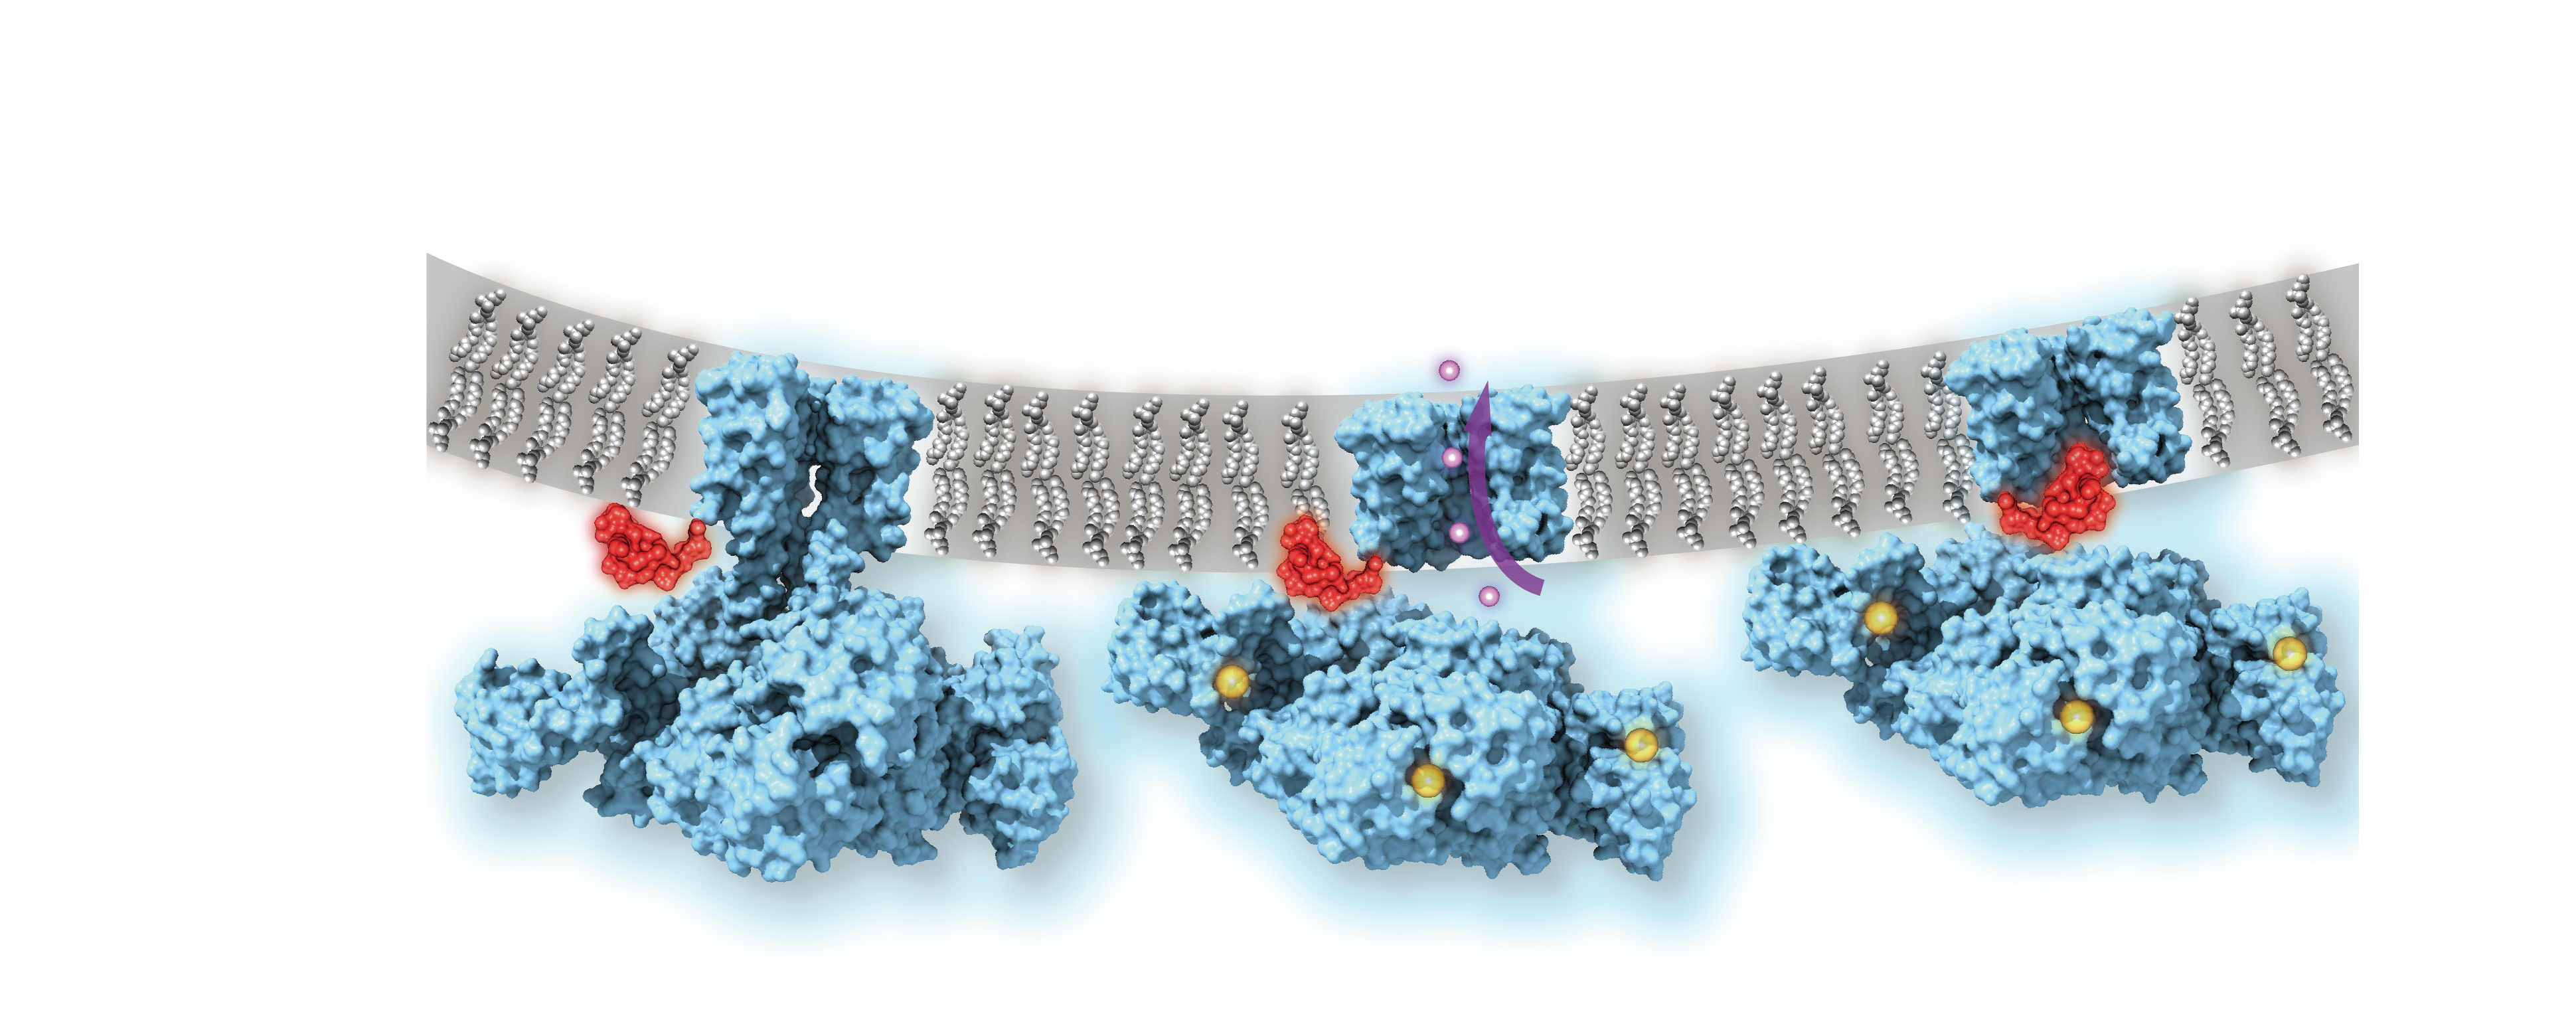 Calcium-gated potassium channel MthK in closed, open and inactivated states, from left to right. Channel structure (blue), with one subunit removed for clarity; calcium ions (yellow); potassium ions (purple); membrane (grey); N-terminal inactivation peptide (red).  The location of the peptide in the inactivated channel was identified in the structural analysis, whereas the location shown in closed and open channels is hypothetical. Image courtesy of Dr. Crina Nimigean.